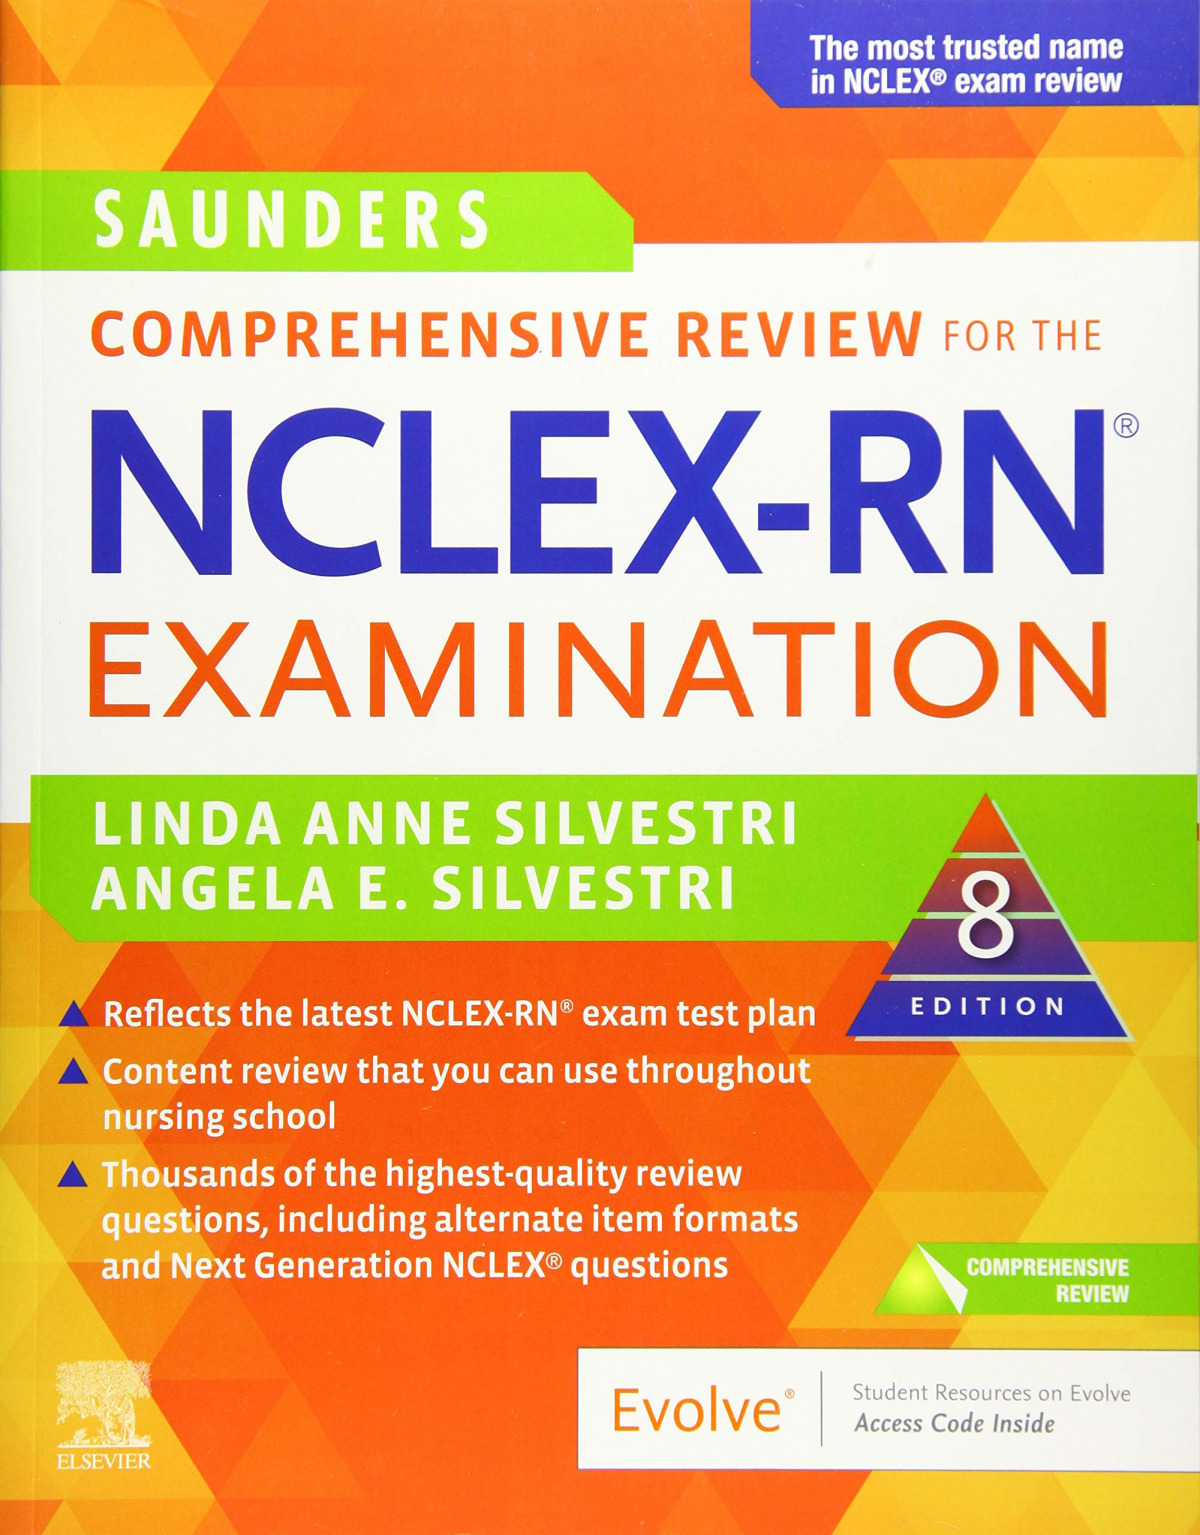 (8ºED) SAUNDERS COMPREHENSIVE REVIEW FOR THE NCLEX-RN EXAMINATION